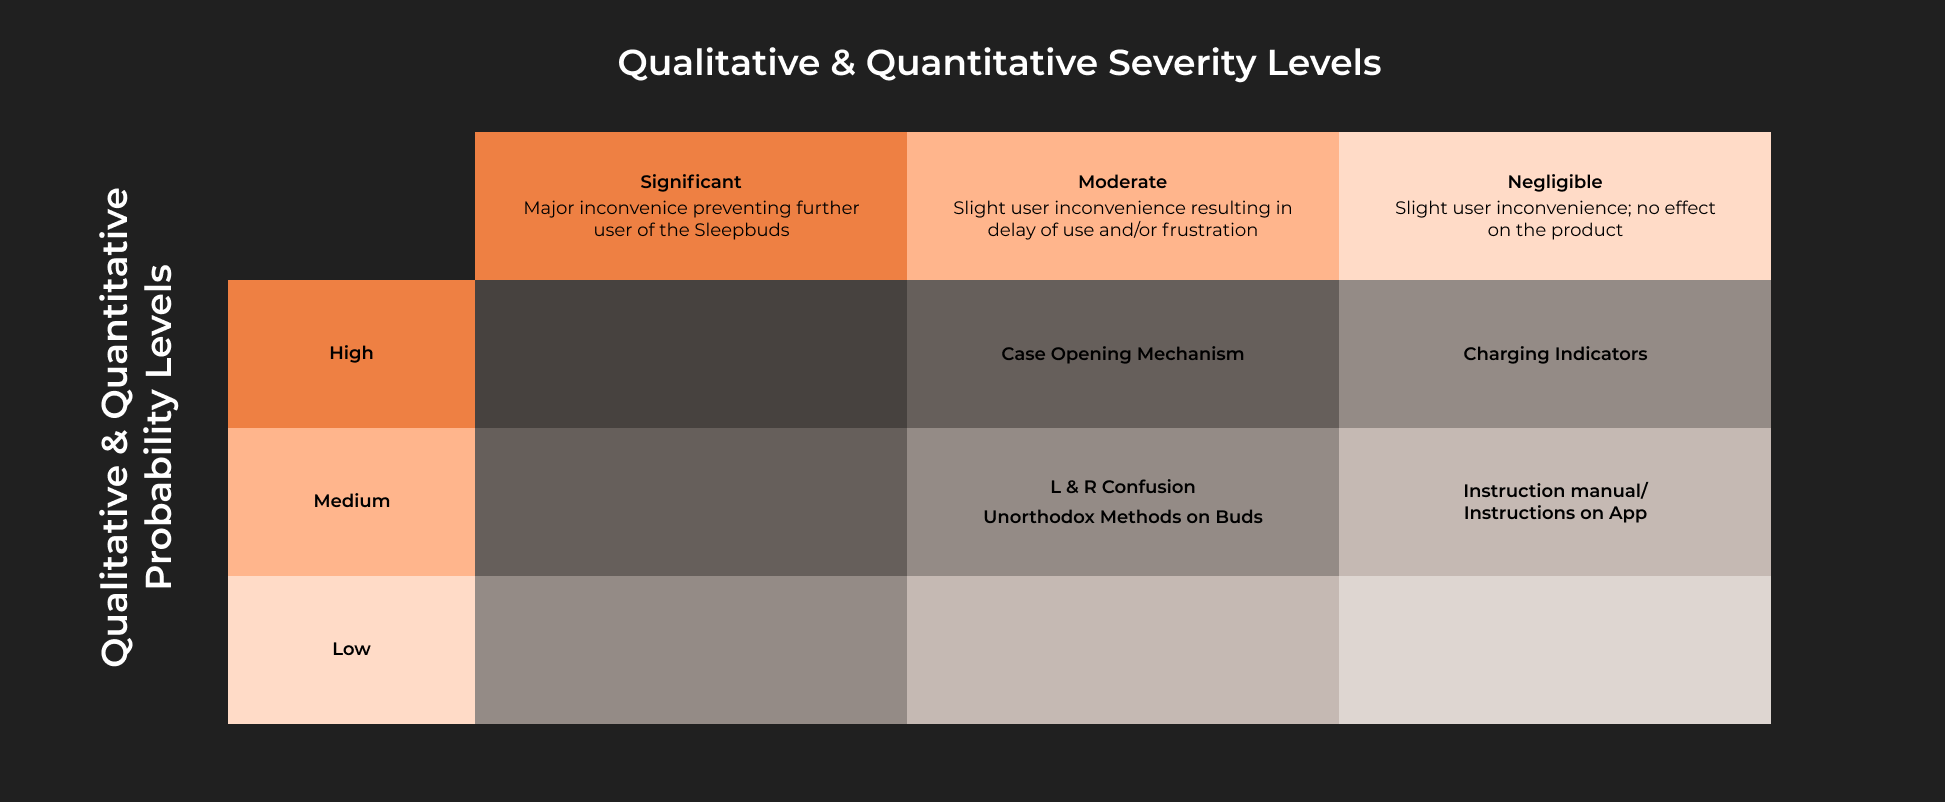 A severity scale matrix with probability and severity on the axes with findings plotted in.